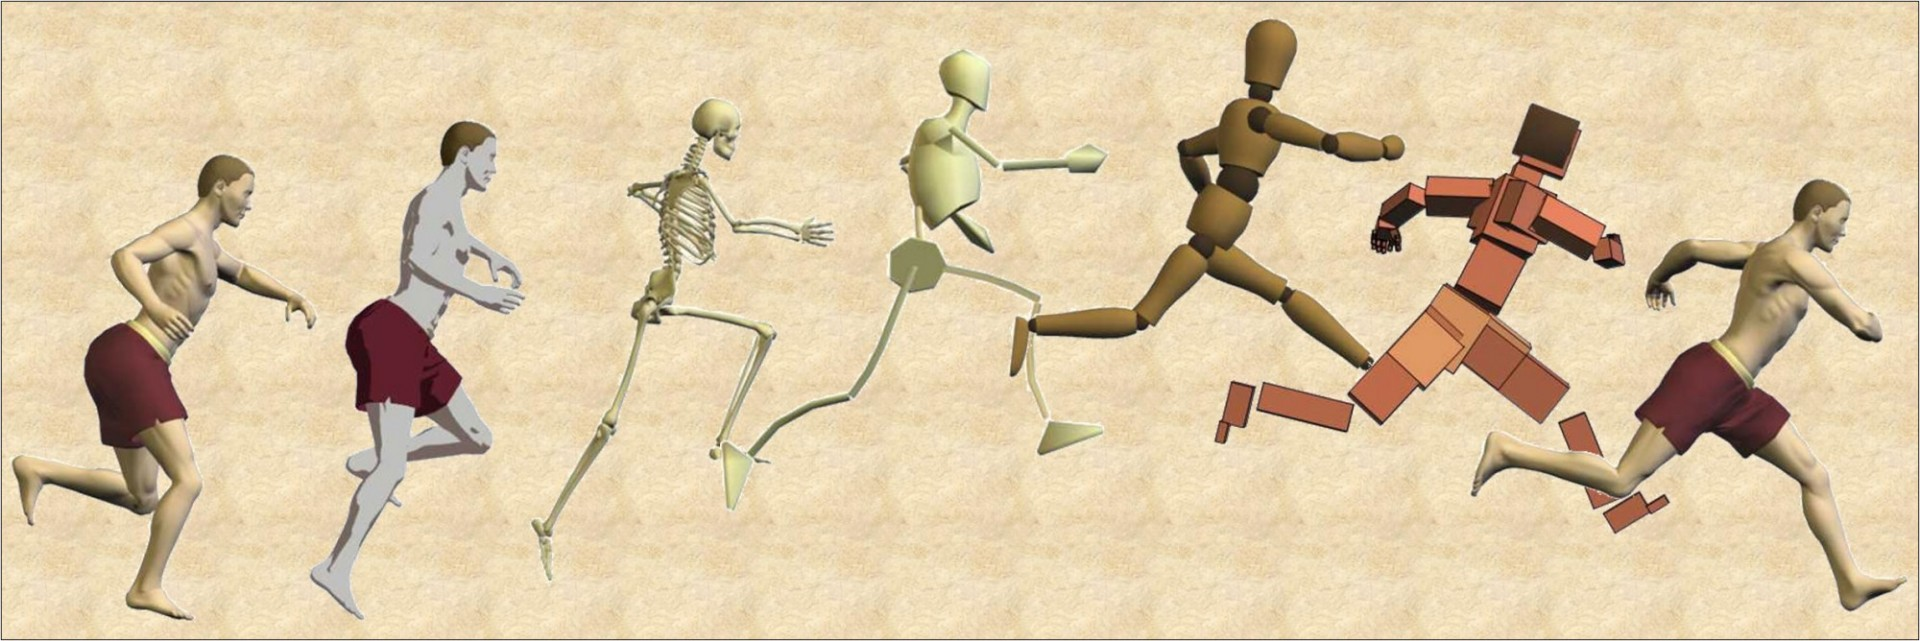 A nice computer generated image of several running people represented  as  humans, skeleton and blocks.